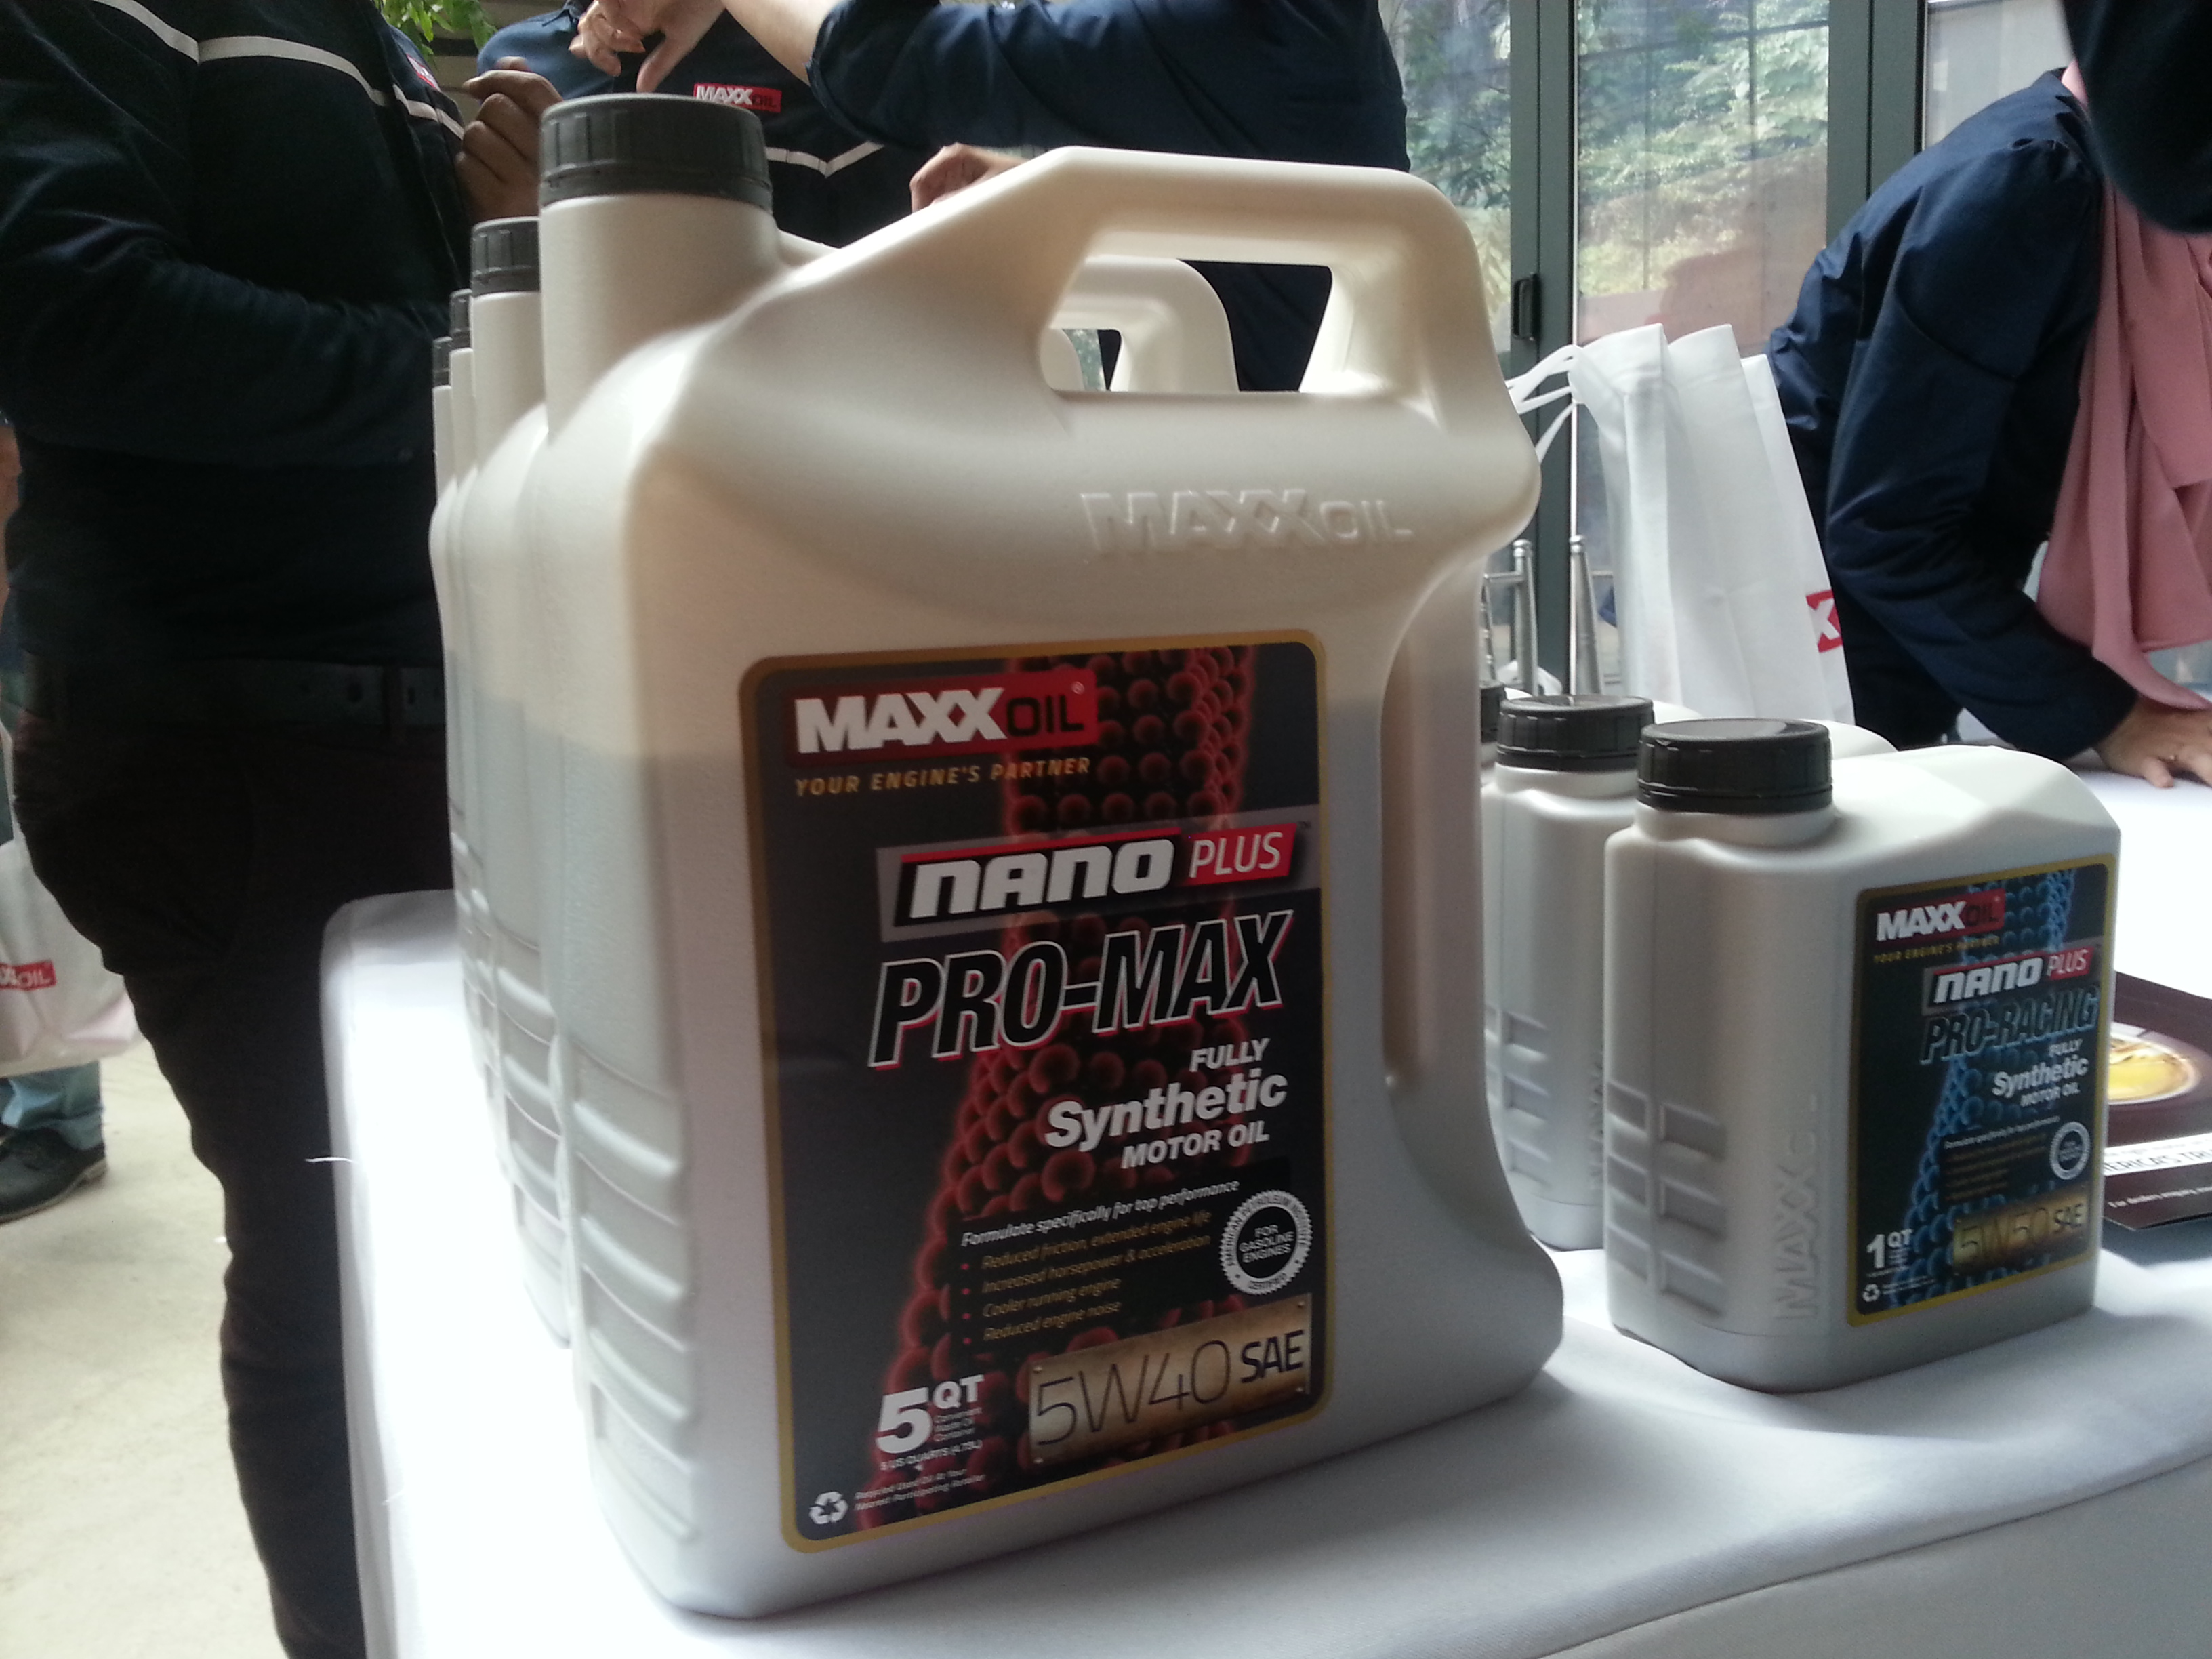 Maxxoil For Better Engine Performance And Protection